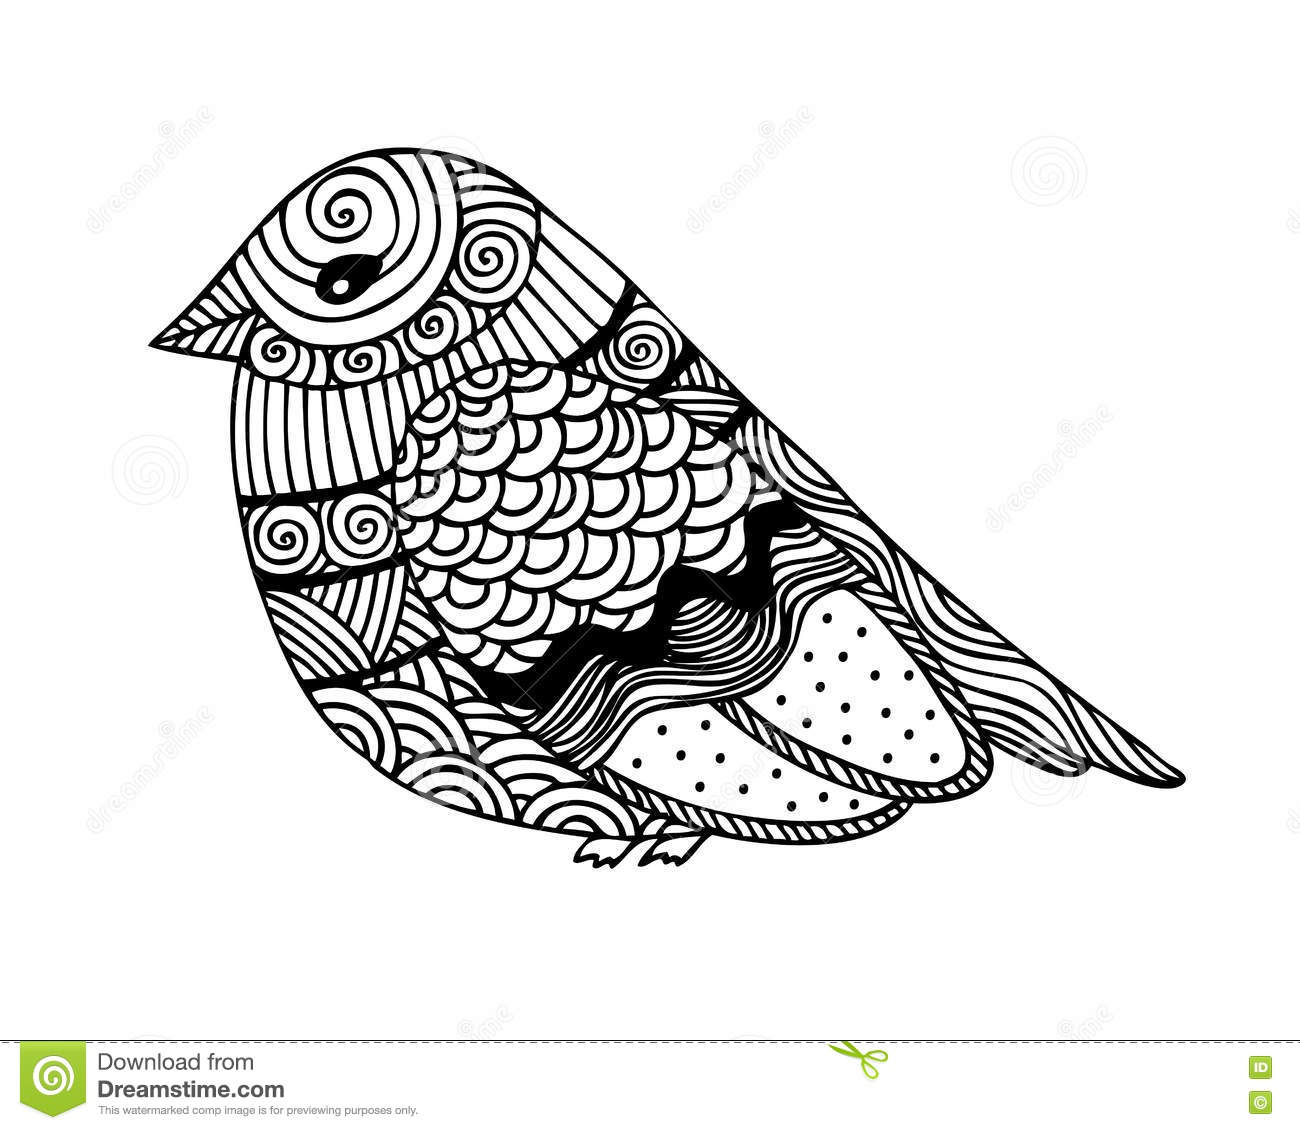 71200 Blue Jay moreover AnimalColoring in addition Elephant Coloring Pages additionally Batman Villains Coloring Pages Super Villain Coloring Sheets Google Twit also Stock Illustration Vector Illustration Zentangle Park Garden Spring Bench Tree Apples Flowers Swing Doodle Zenart Dudling Anti Stress Image68923505. on bird coloring pages for adults